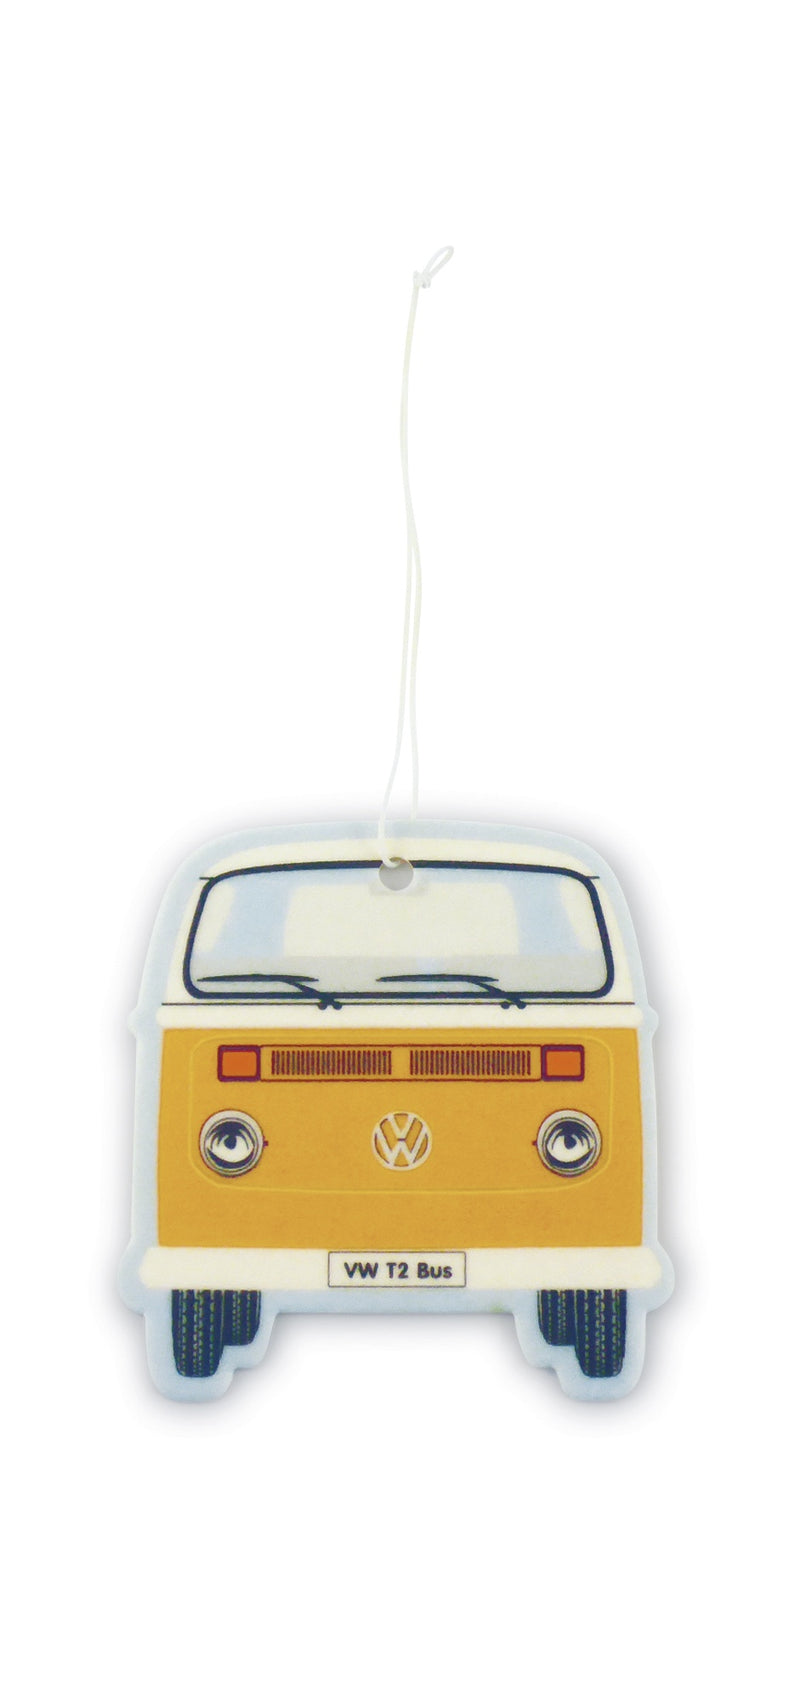 VW T2 Bus Air Freshener - Vanilla/Orange